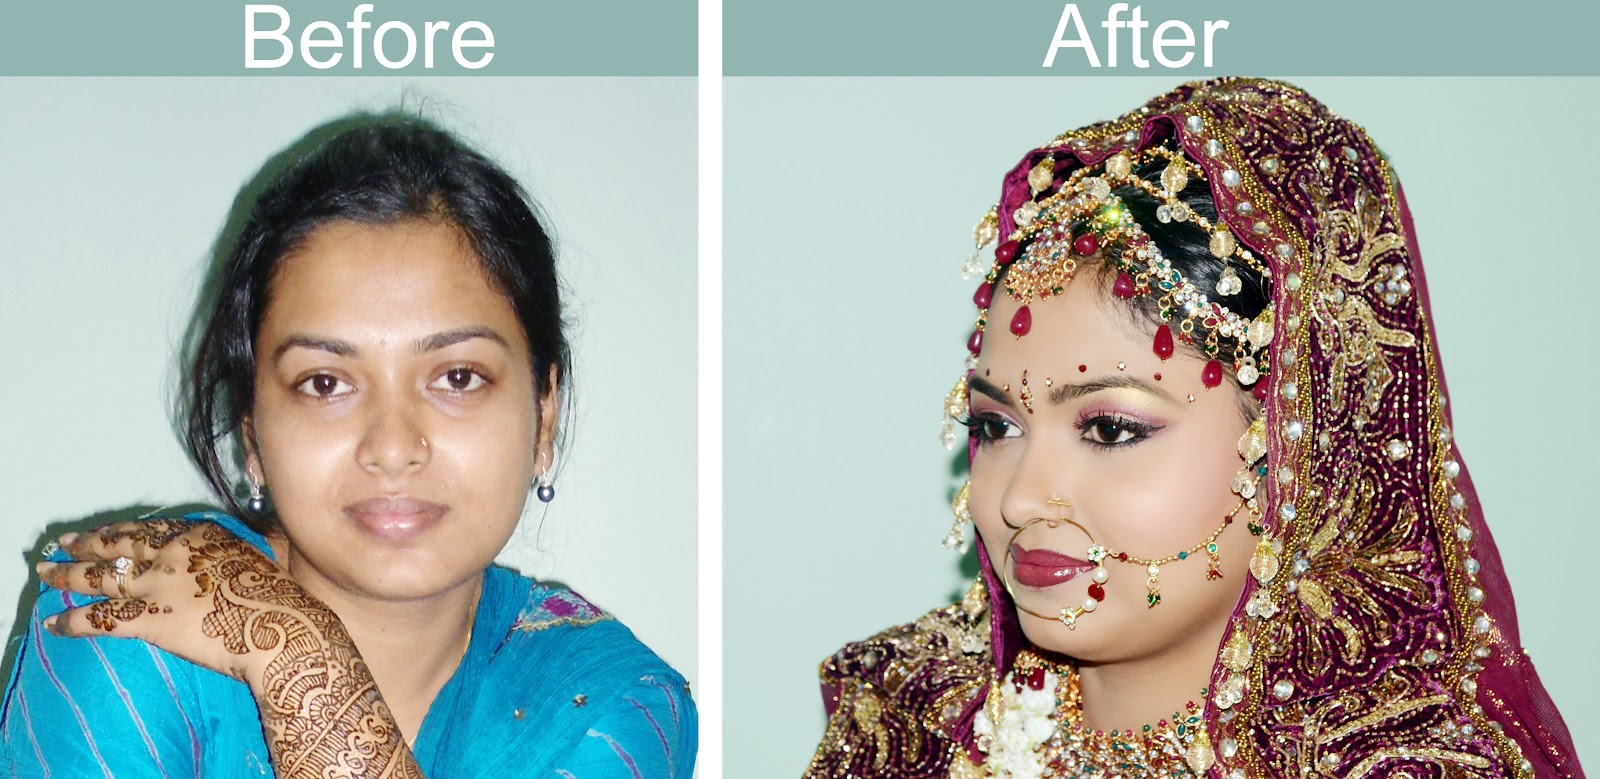 Bridal Makeup Pictures Before And After : Image Wedding Makeup Before And After Download